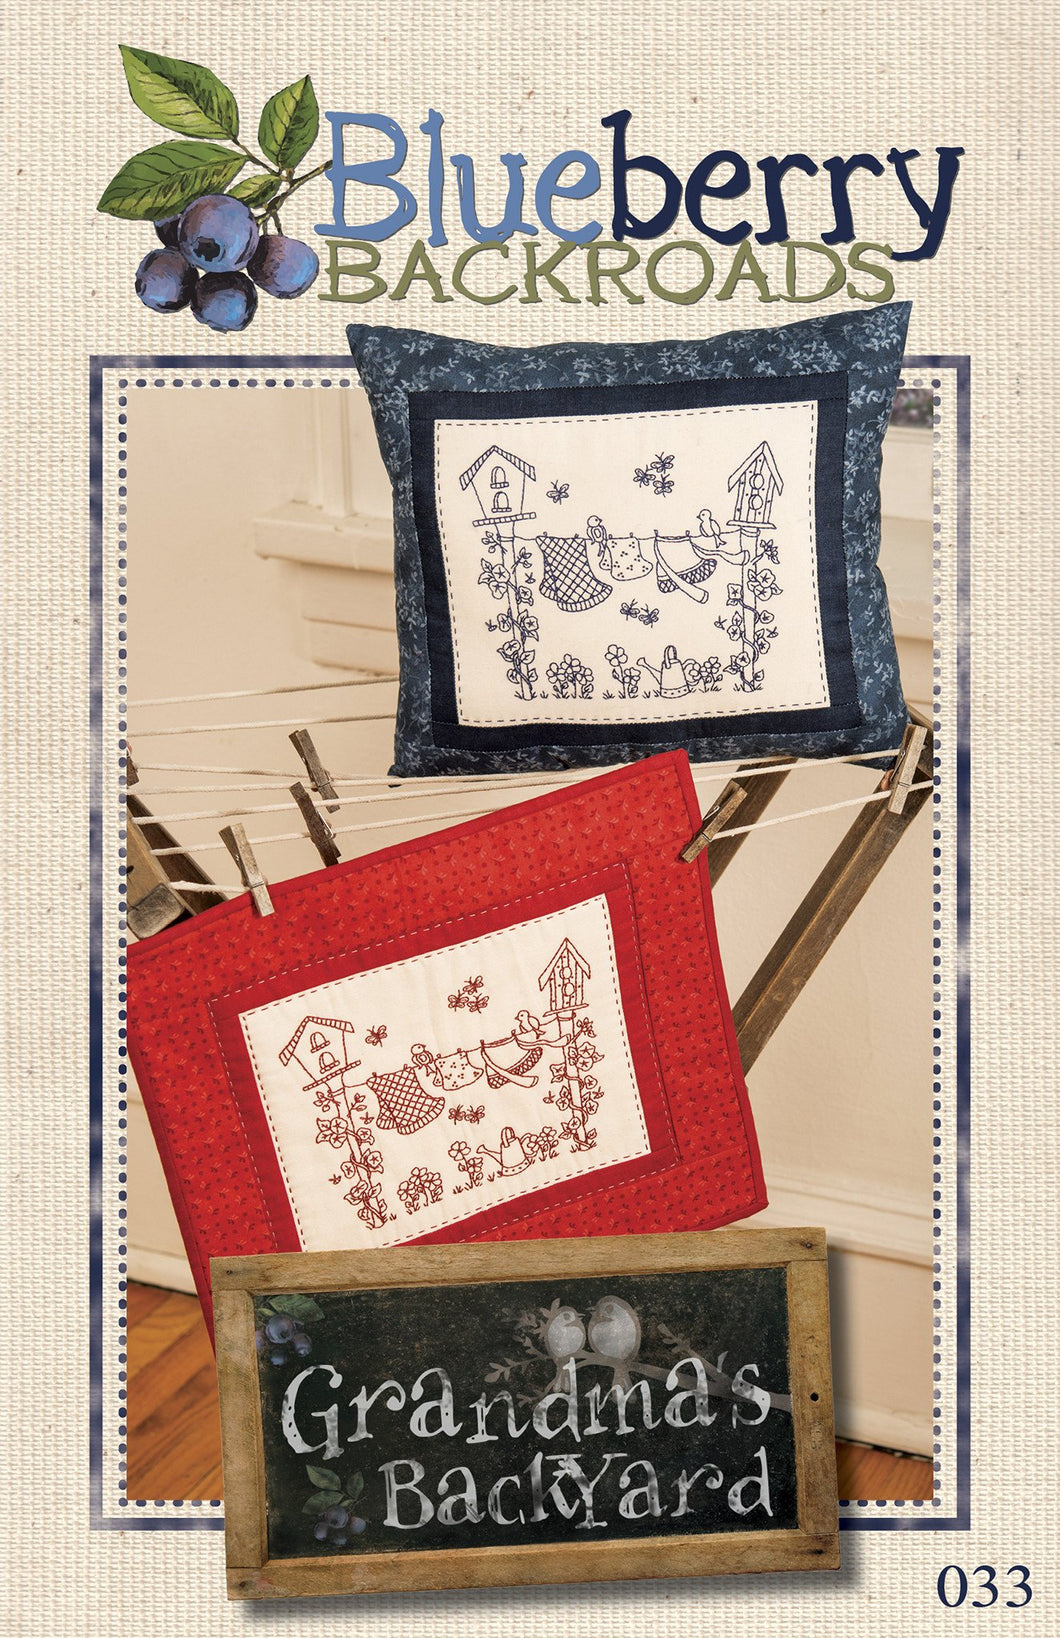 Grandma's Backyard Pattern by Blueberry Backroads